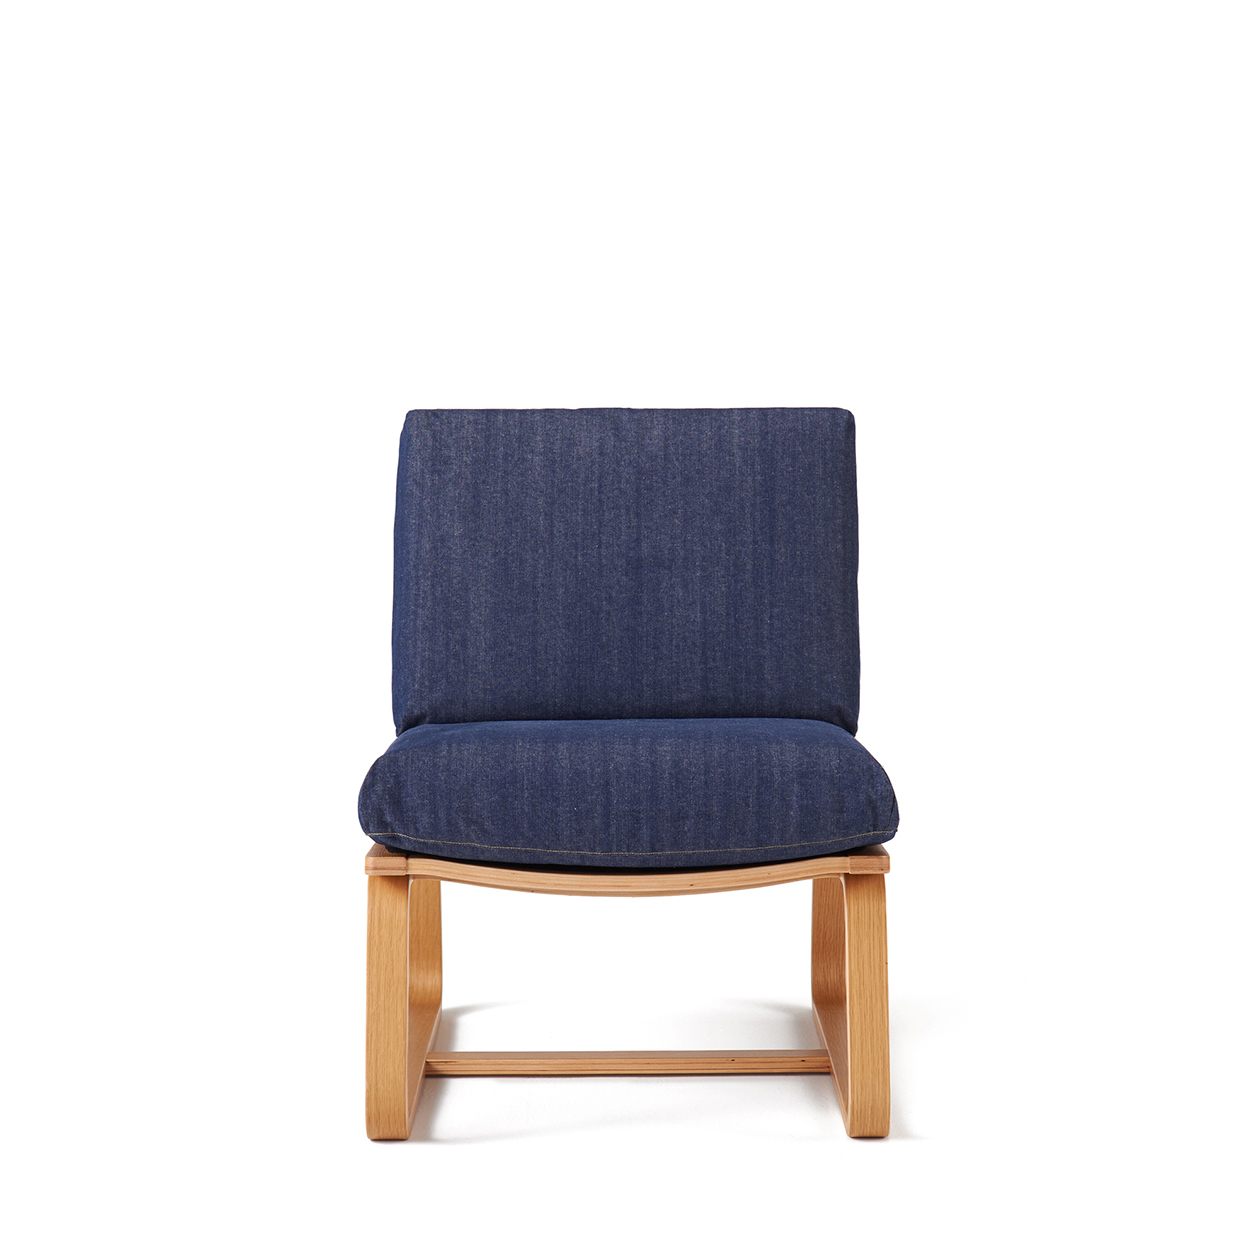 COTTON DENIM COVER FOR LD SOFA CHAIR / BLUE